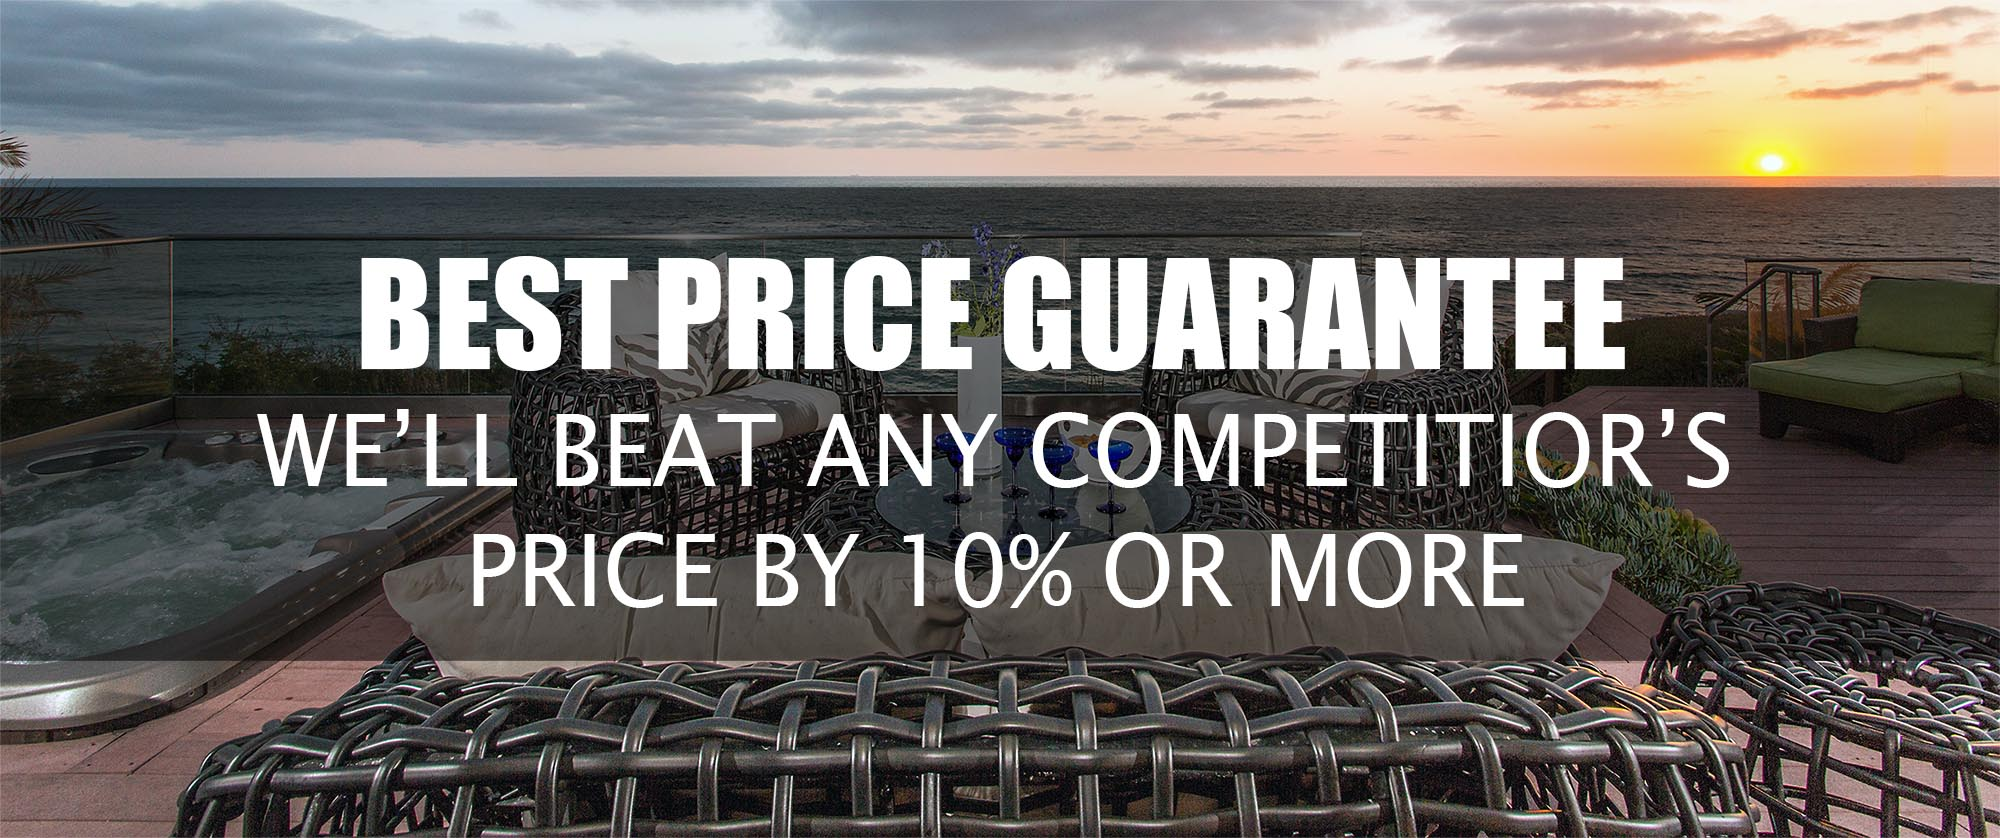 Best Deck Price Nj We Ll Beat Any Quote By 10 Or More